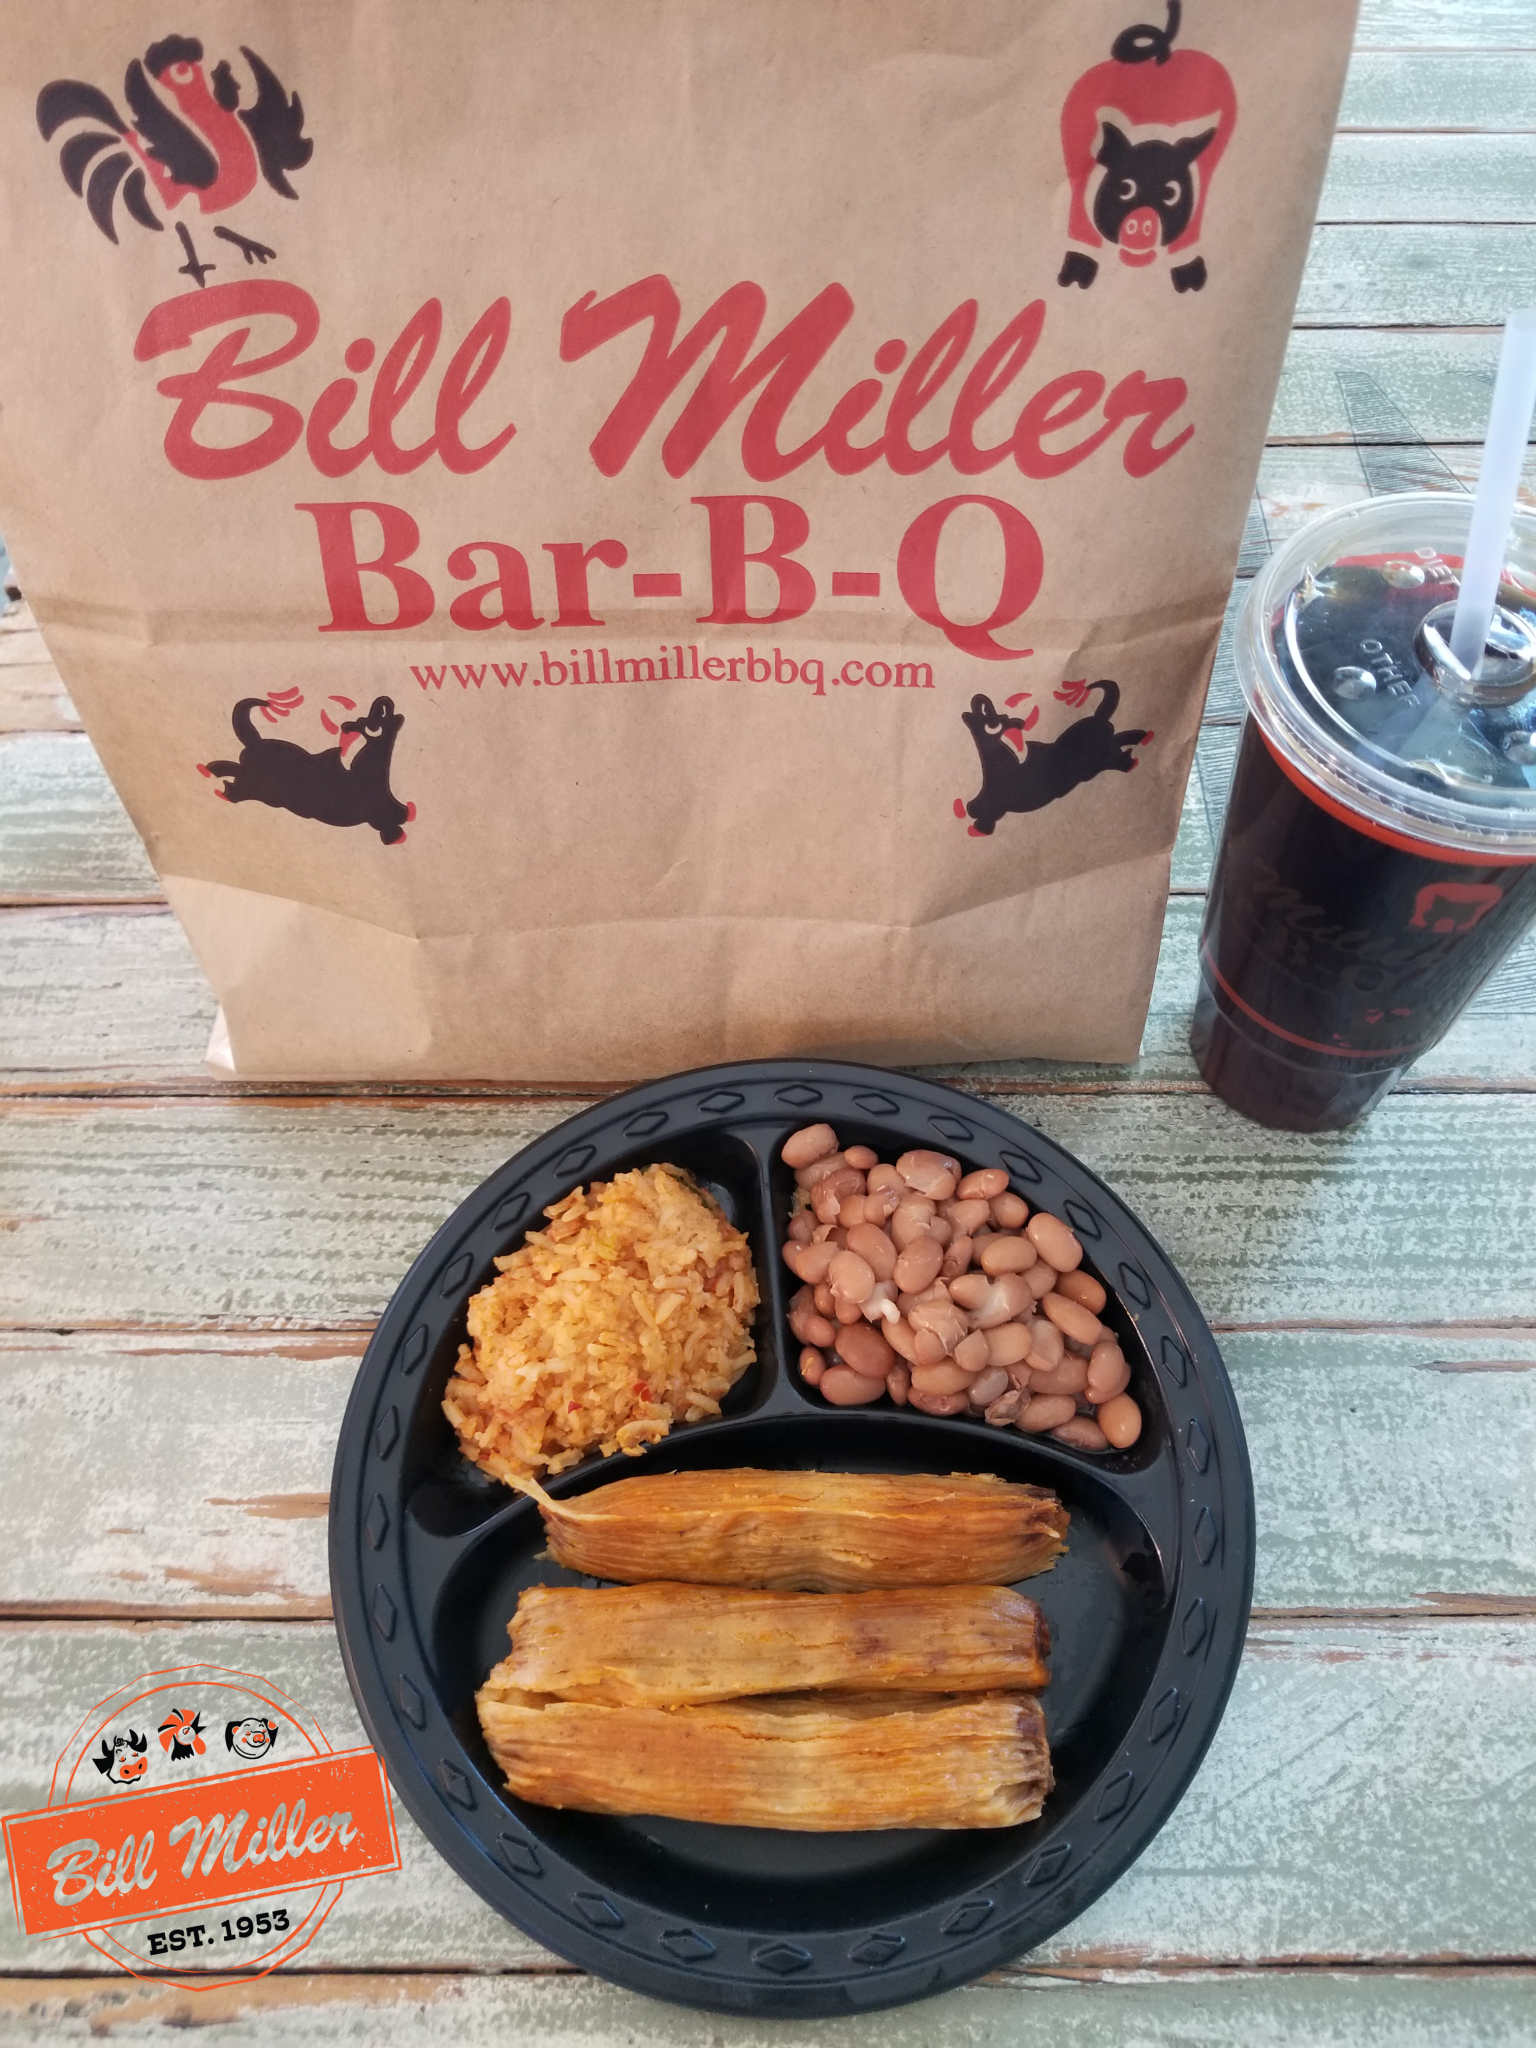 Bill Miller Bar B Q Selling Tamales For The First Time